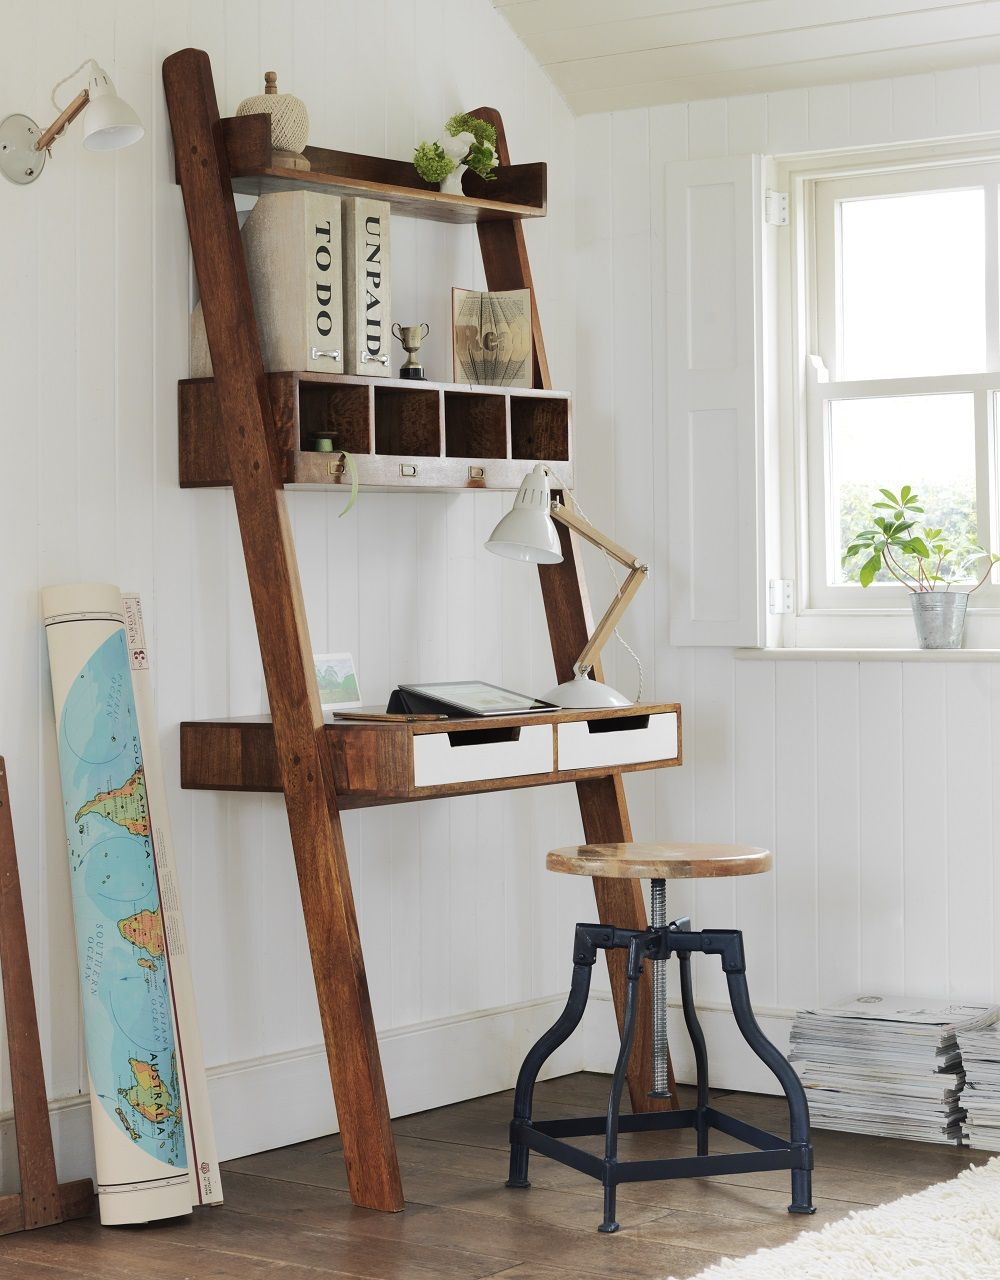 Small home office ideas delivering big vintage industrial style